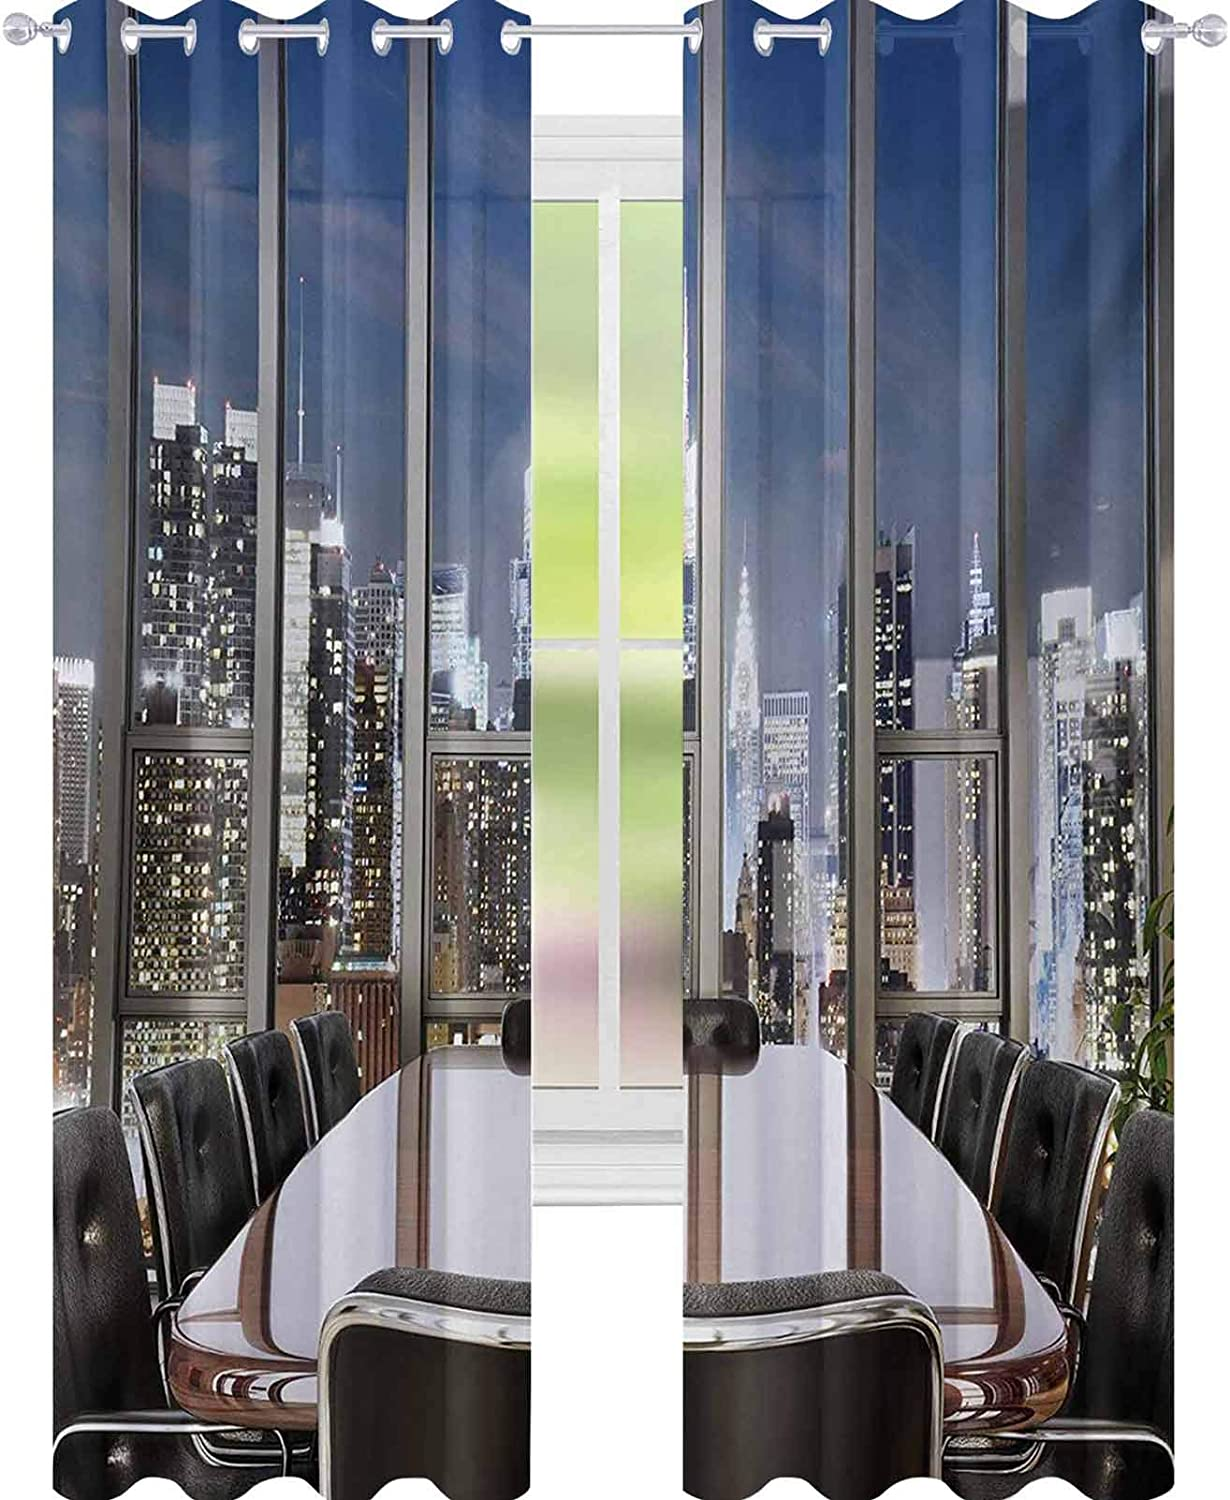 """YUAZHOQI Modern Thermal Insulated Blackout Curtain Business Office Conference Room Table Chairs City View at Dusk Realistic Photo Decorative Curtains for Living Room 52"""" x 95"""" Grey Black Blue"""